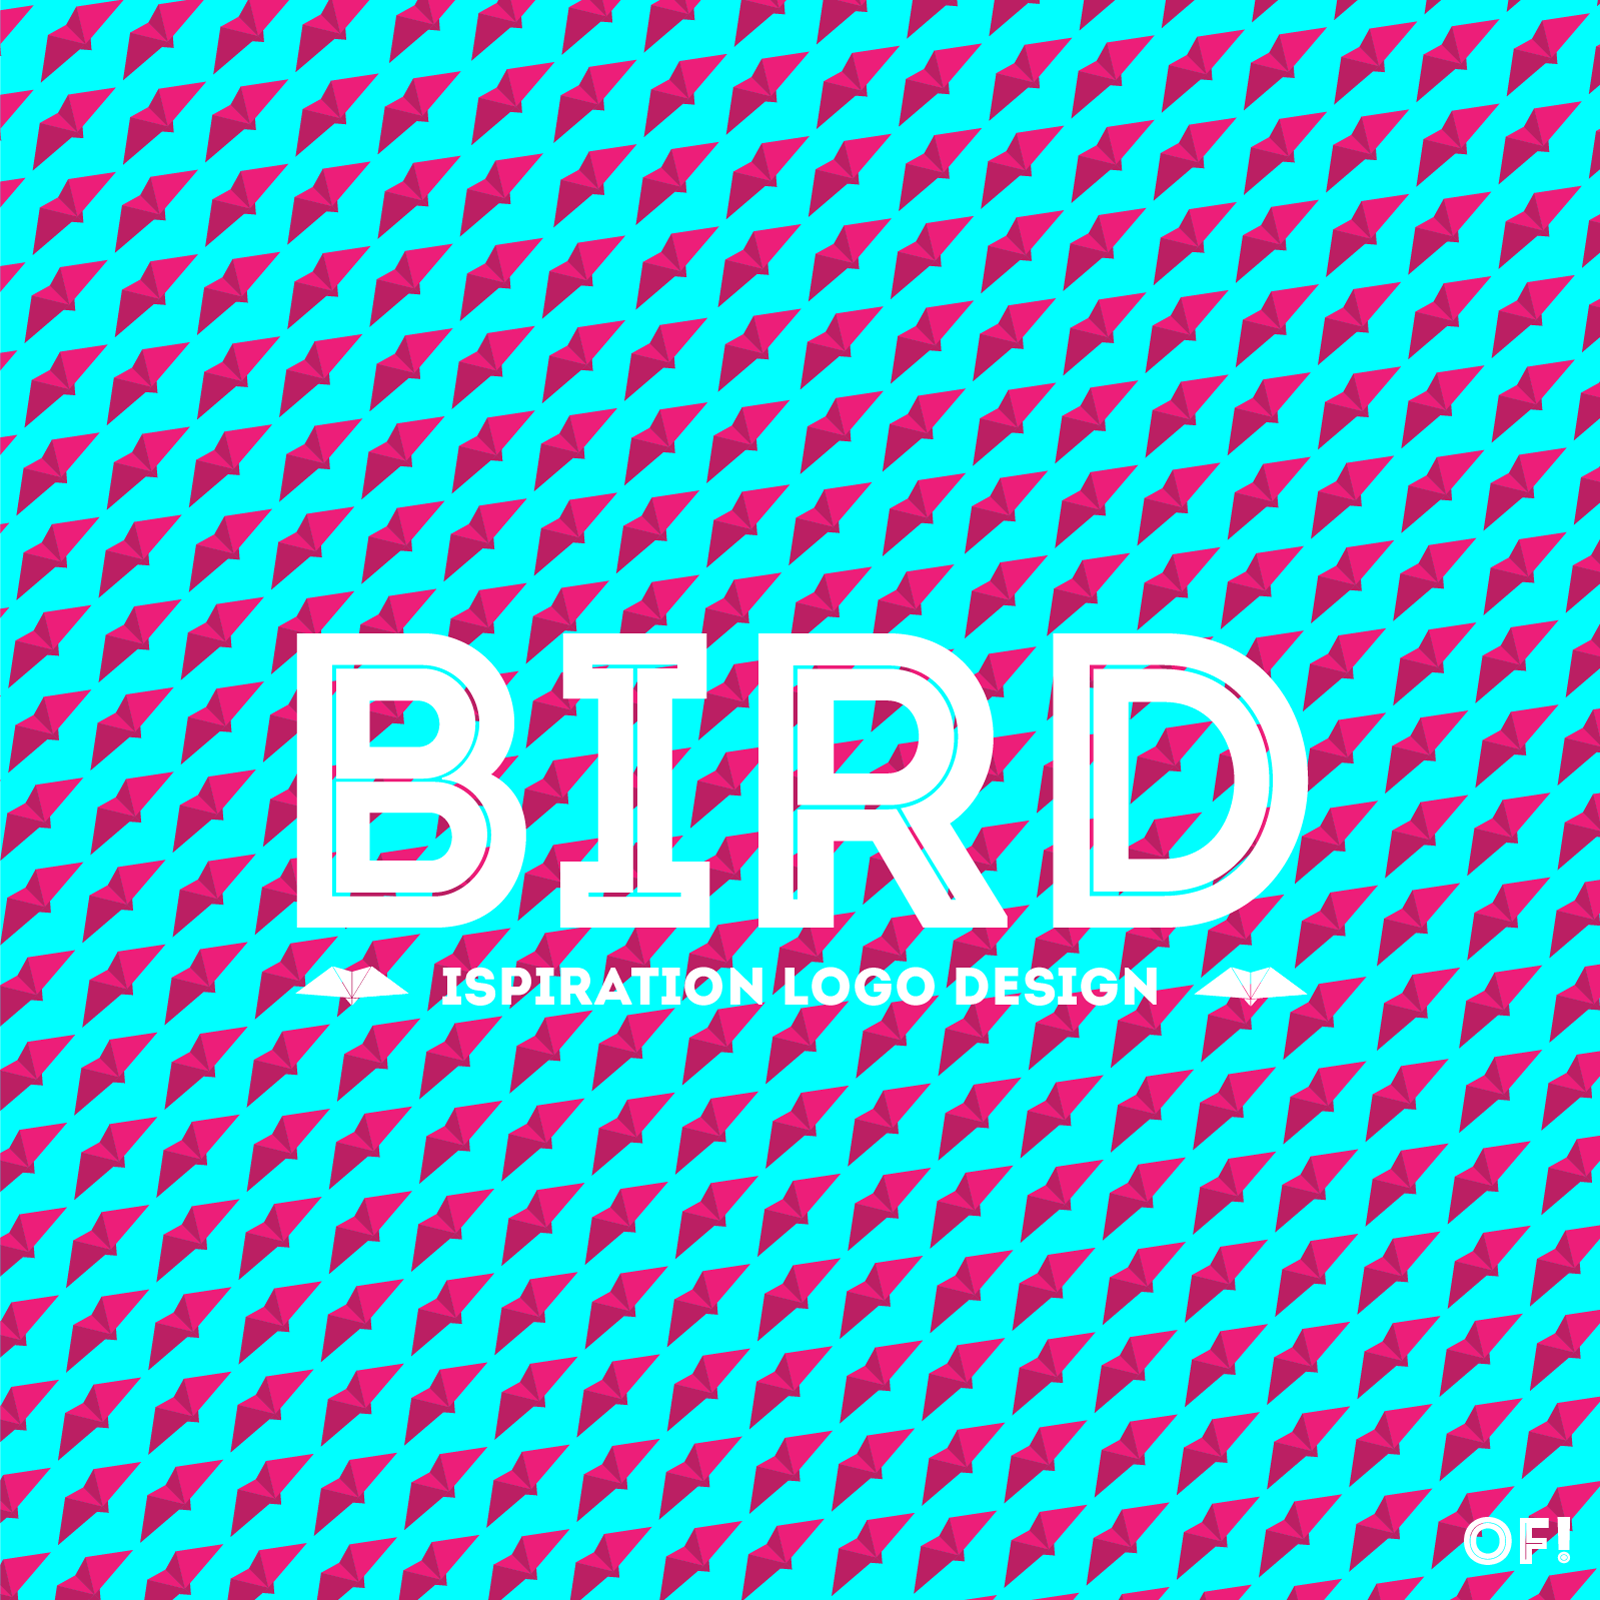 BIRD---Ispiaration-Logo-Design---5